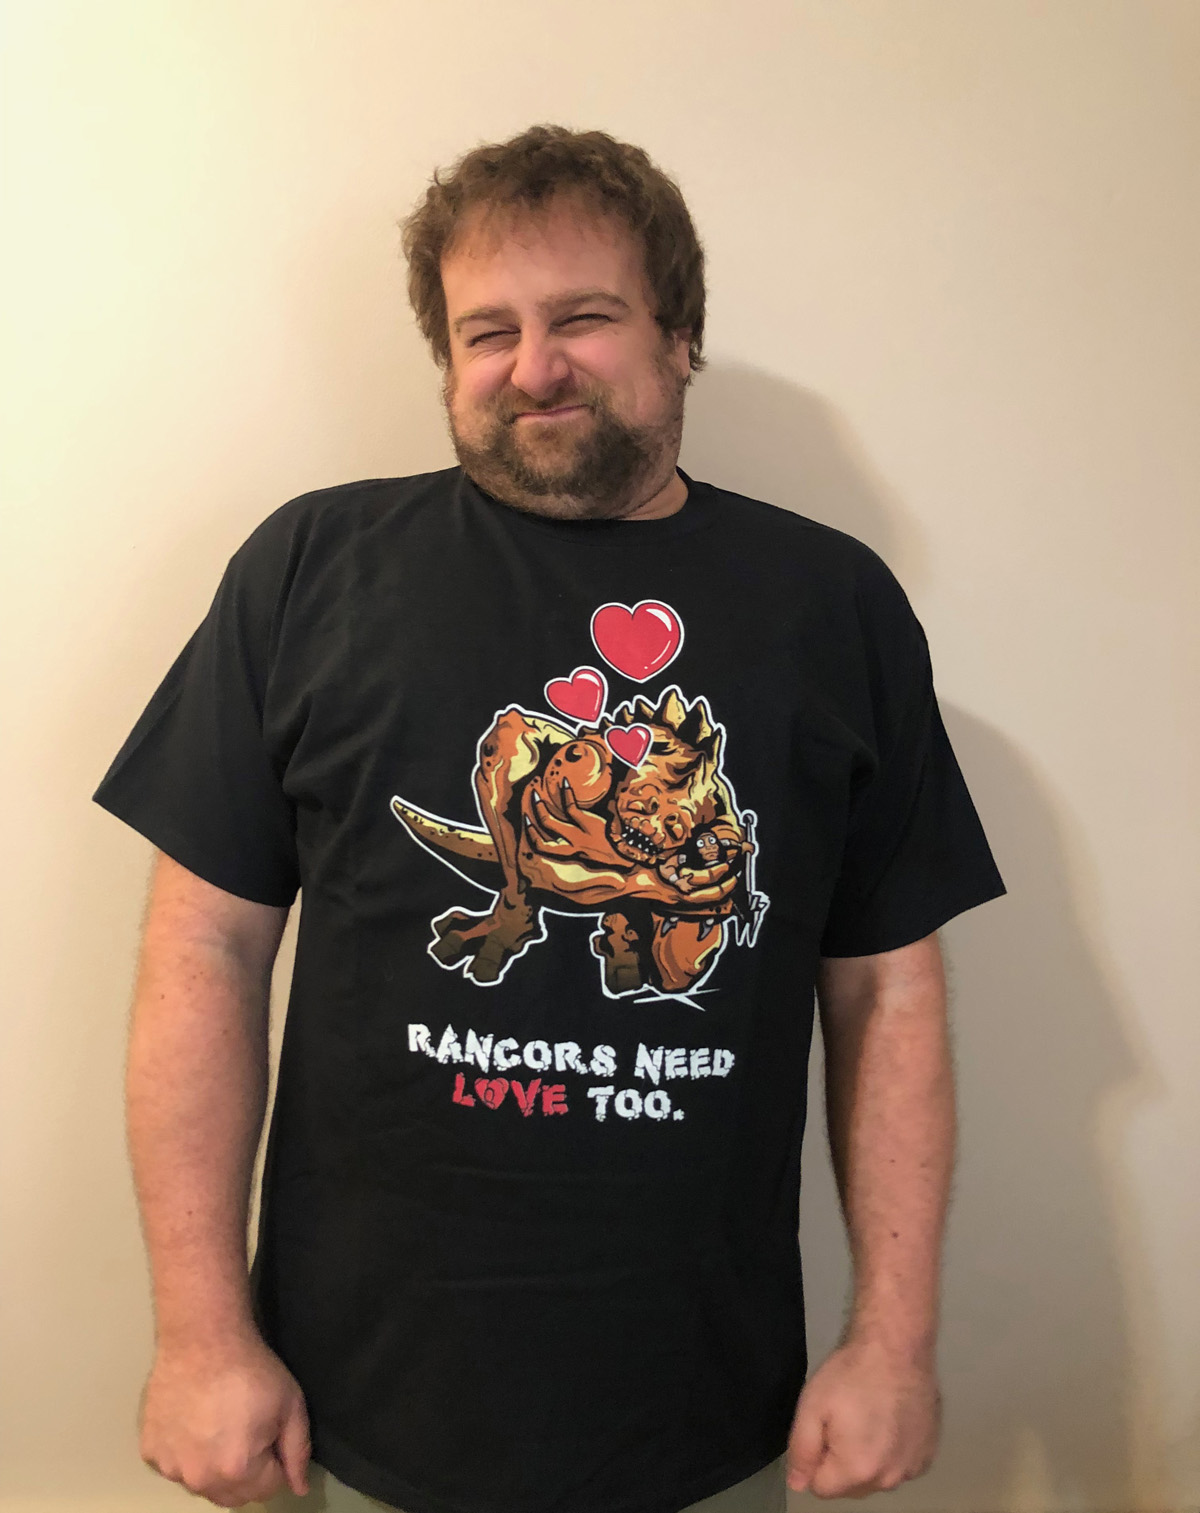 Rancors Need Love Too T-Shirt